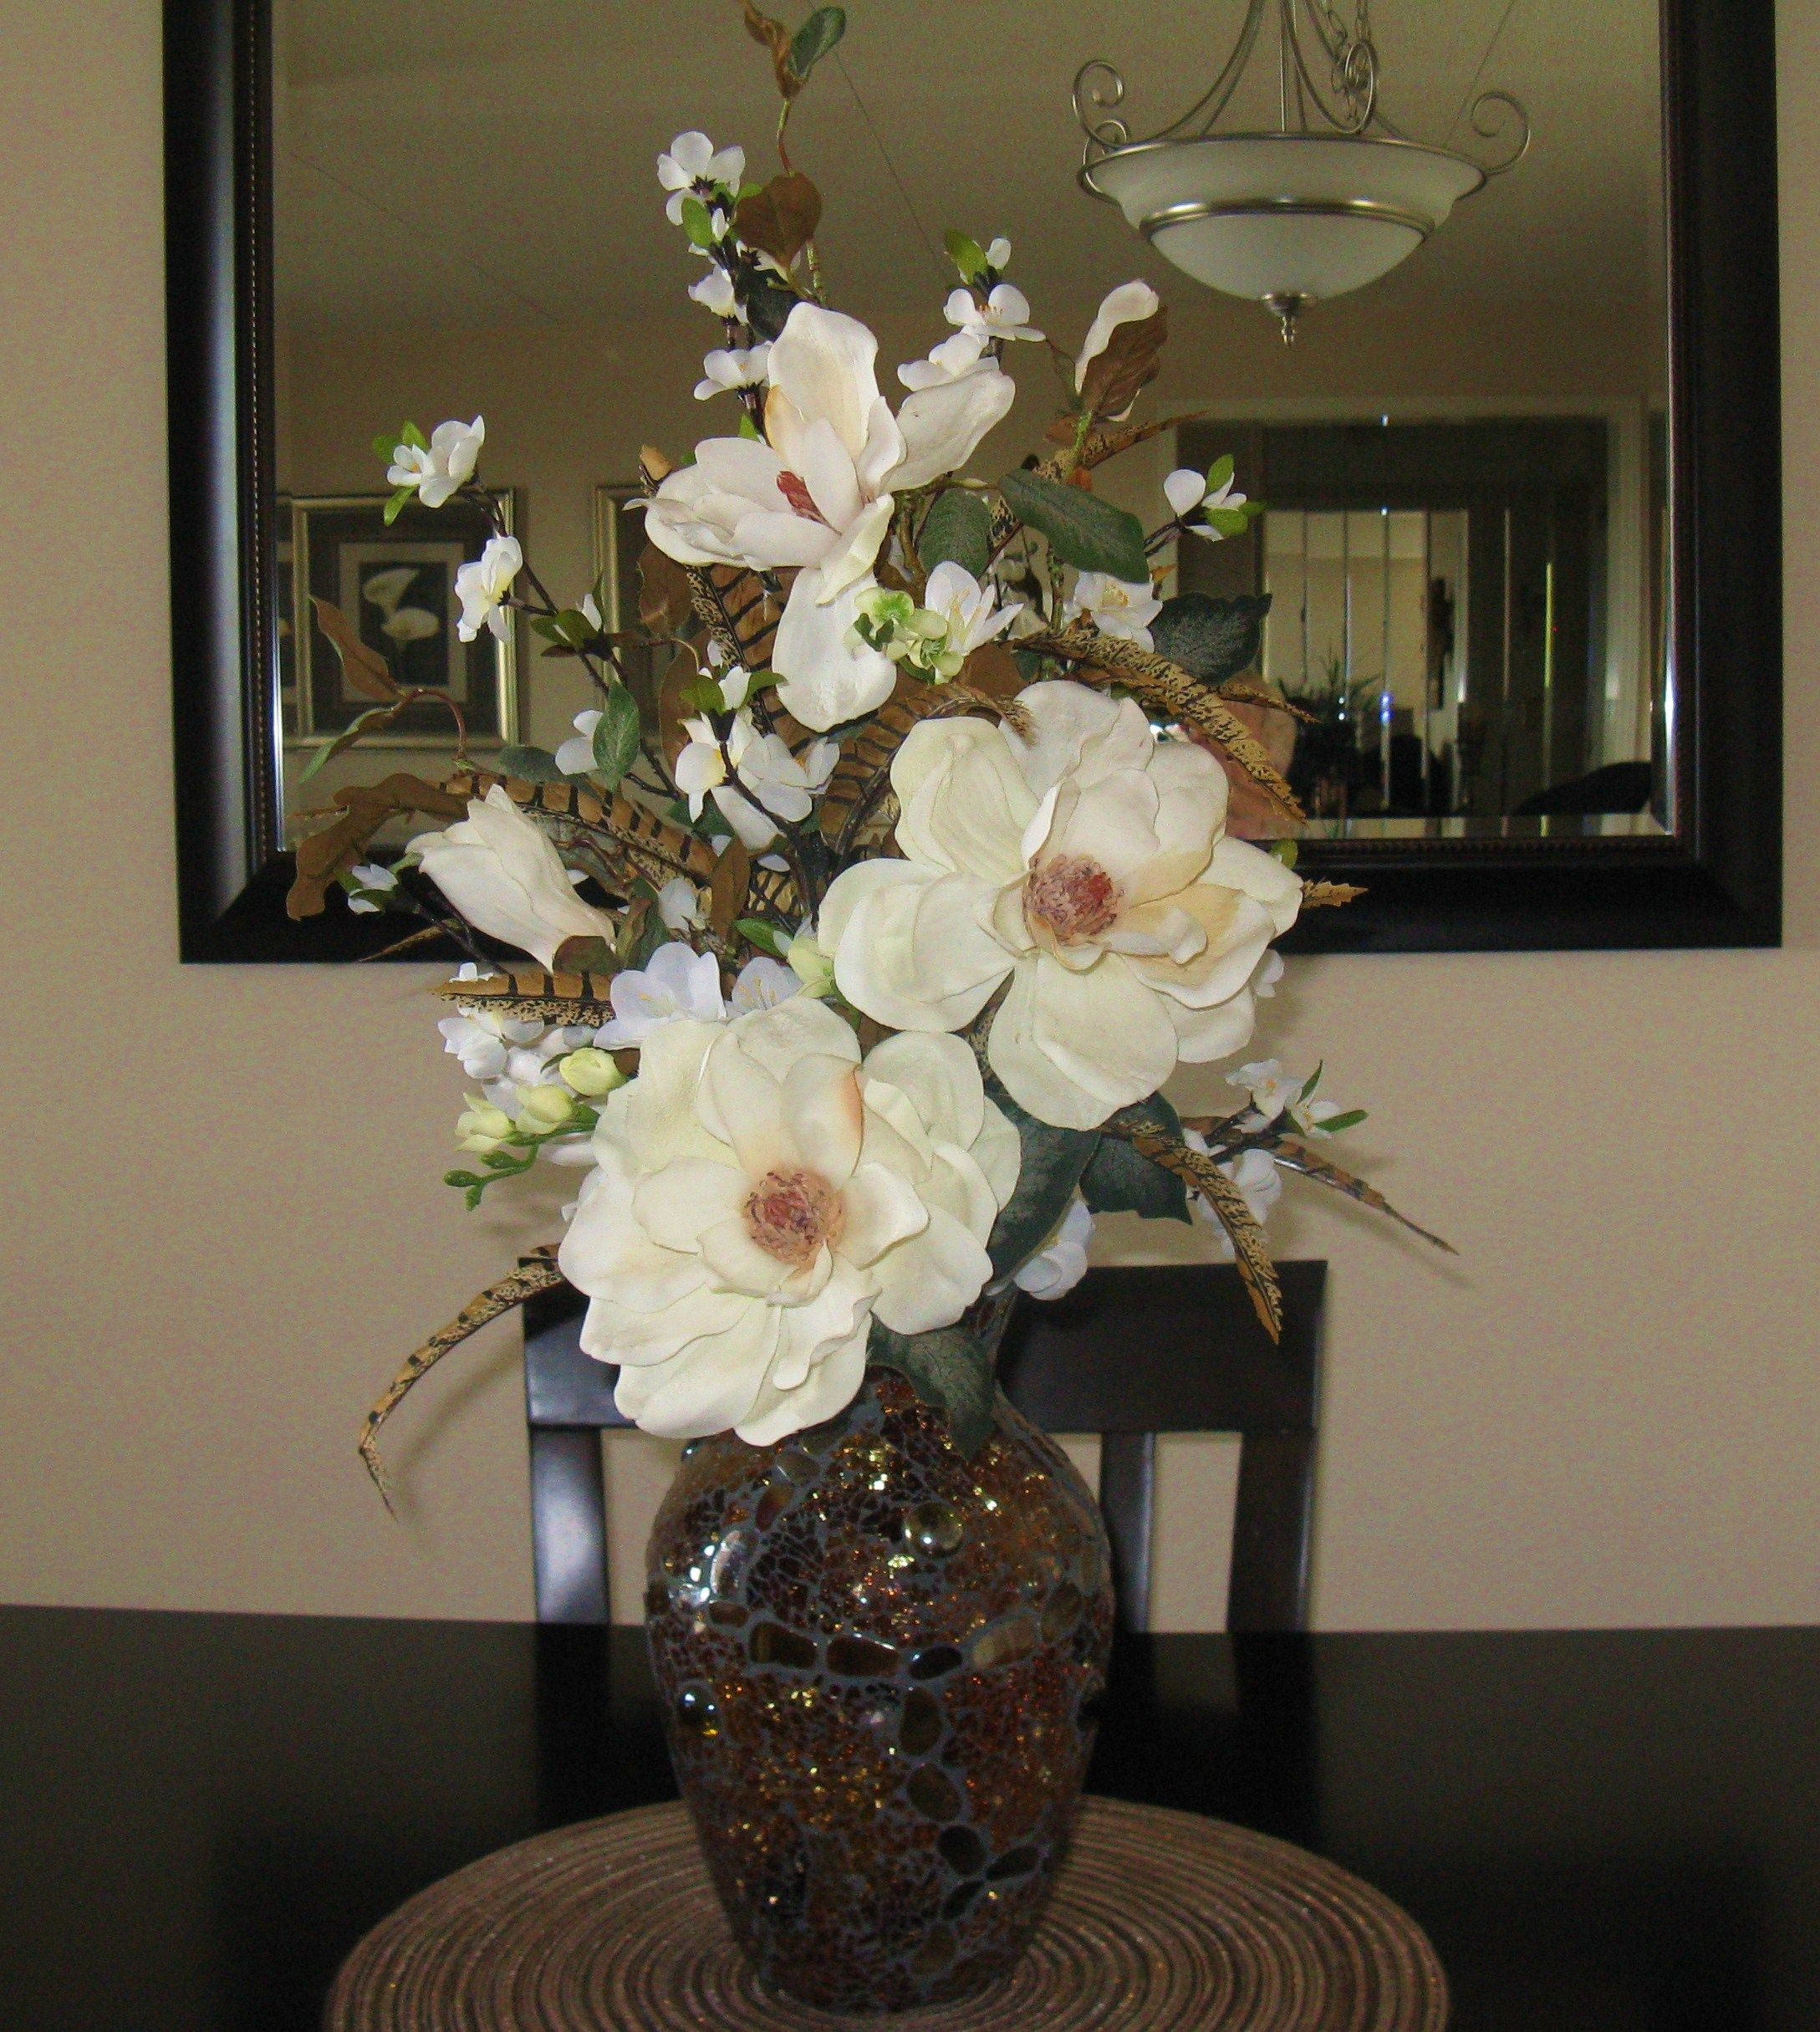 Magnolias Artificial Floral Arrangements Dried Flower Arrangements Spring Flower Arrangements